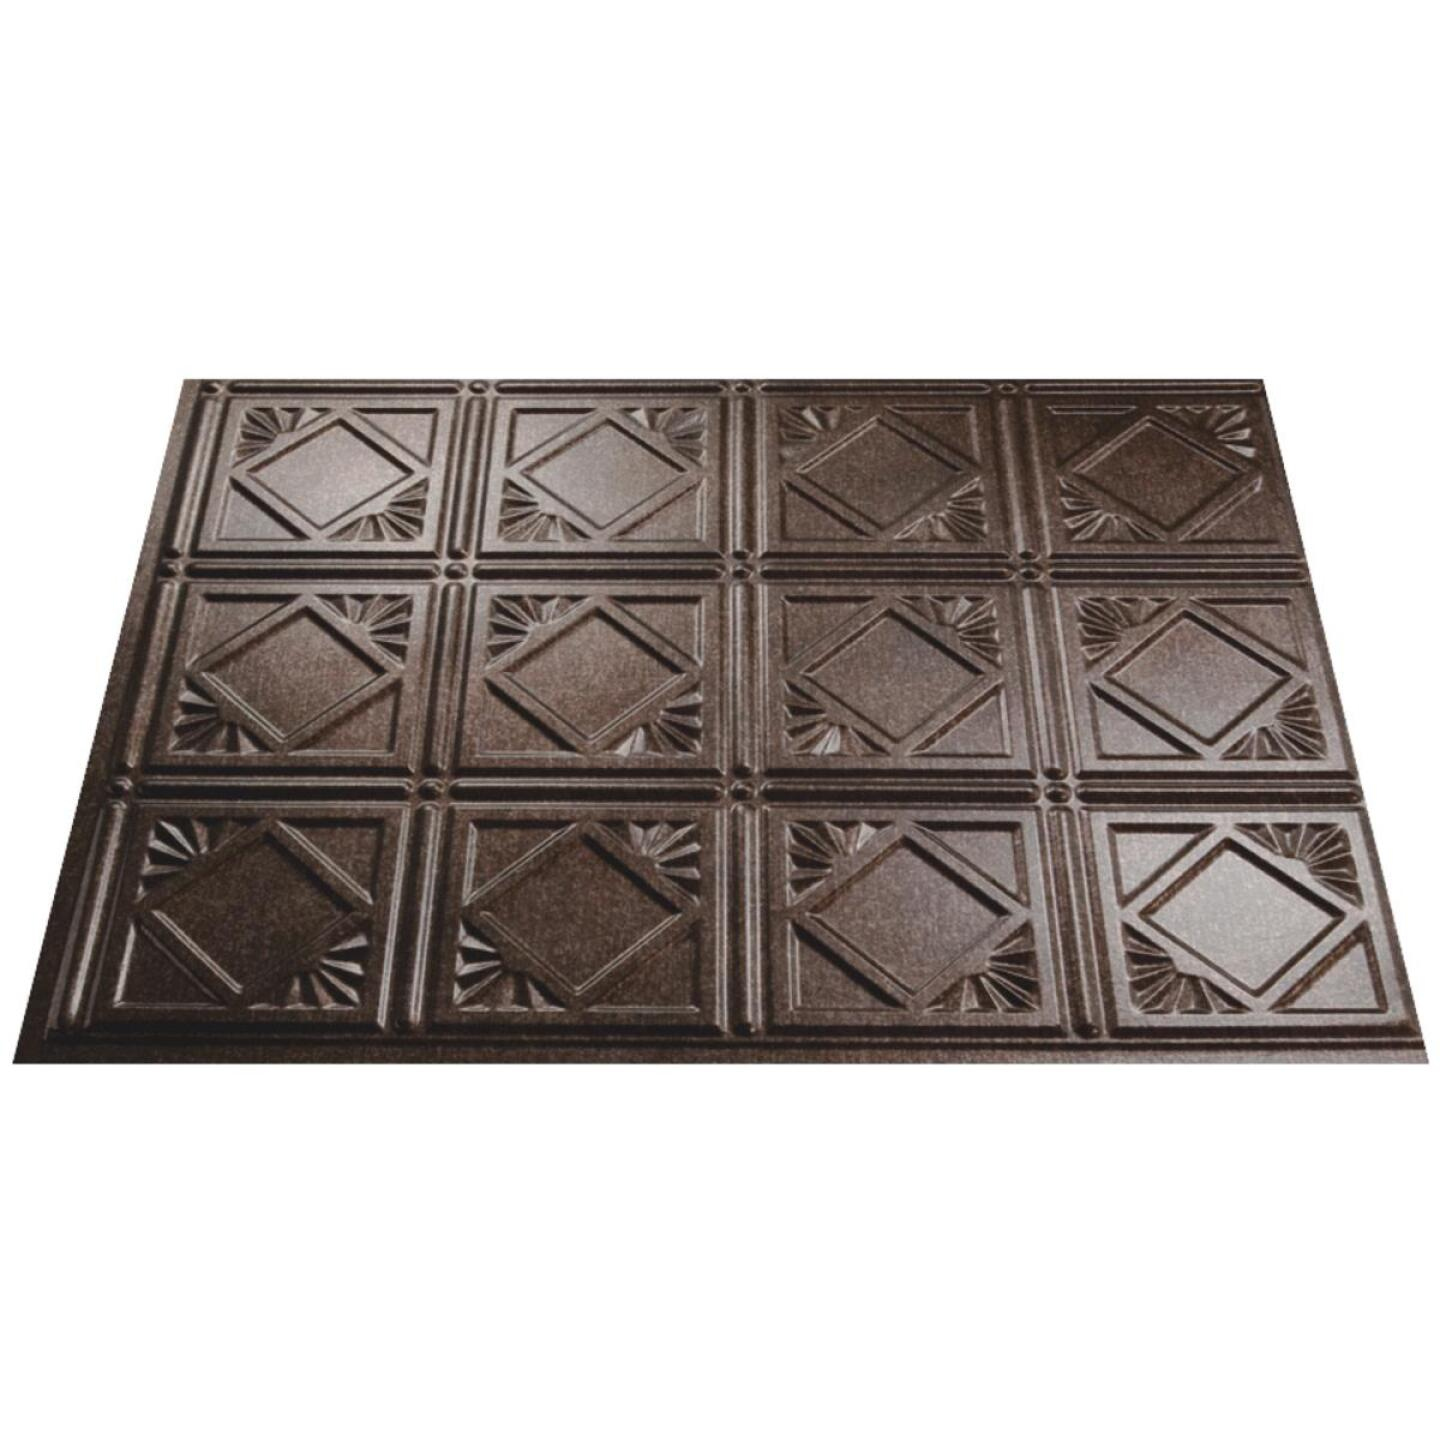 Fasade 18 In. x 24 In. Thermoplastic Backsplash Panel, Smoked Pewter Traditional 4 Image 1